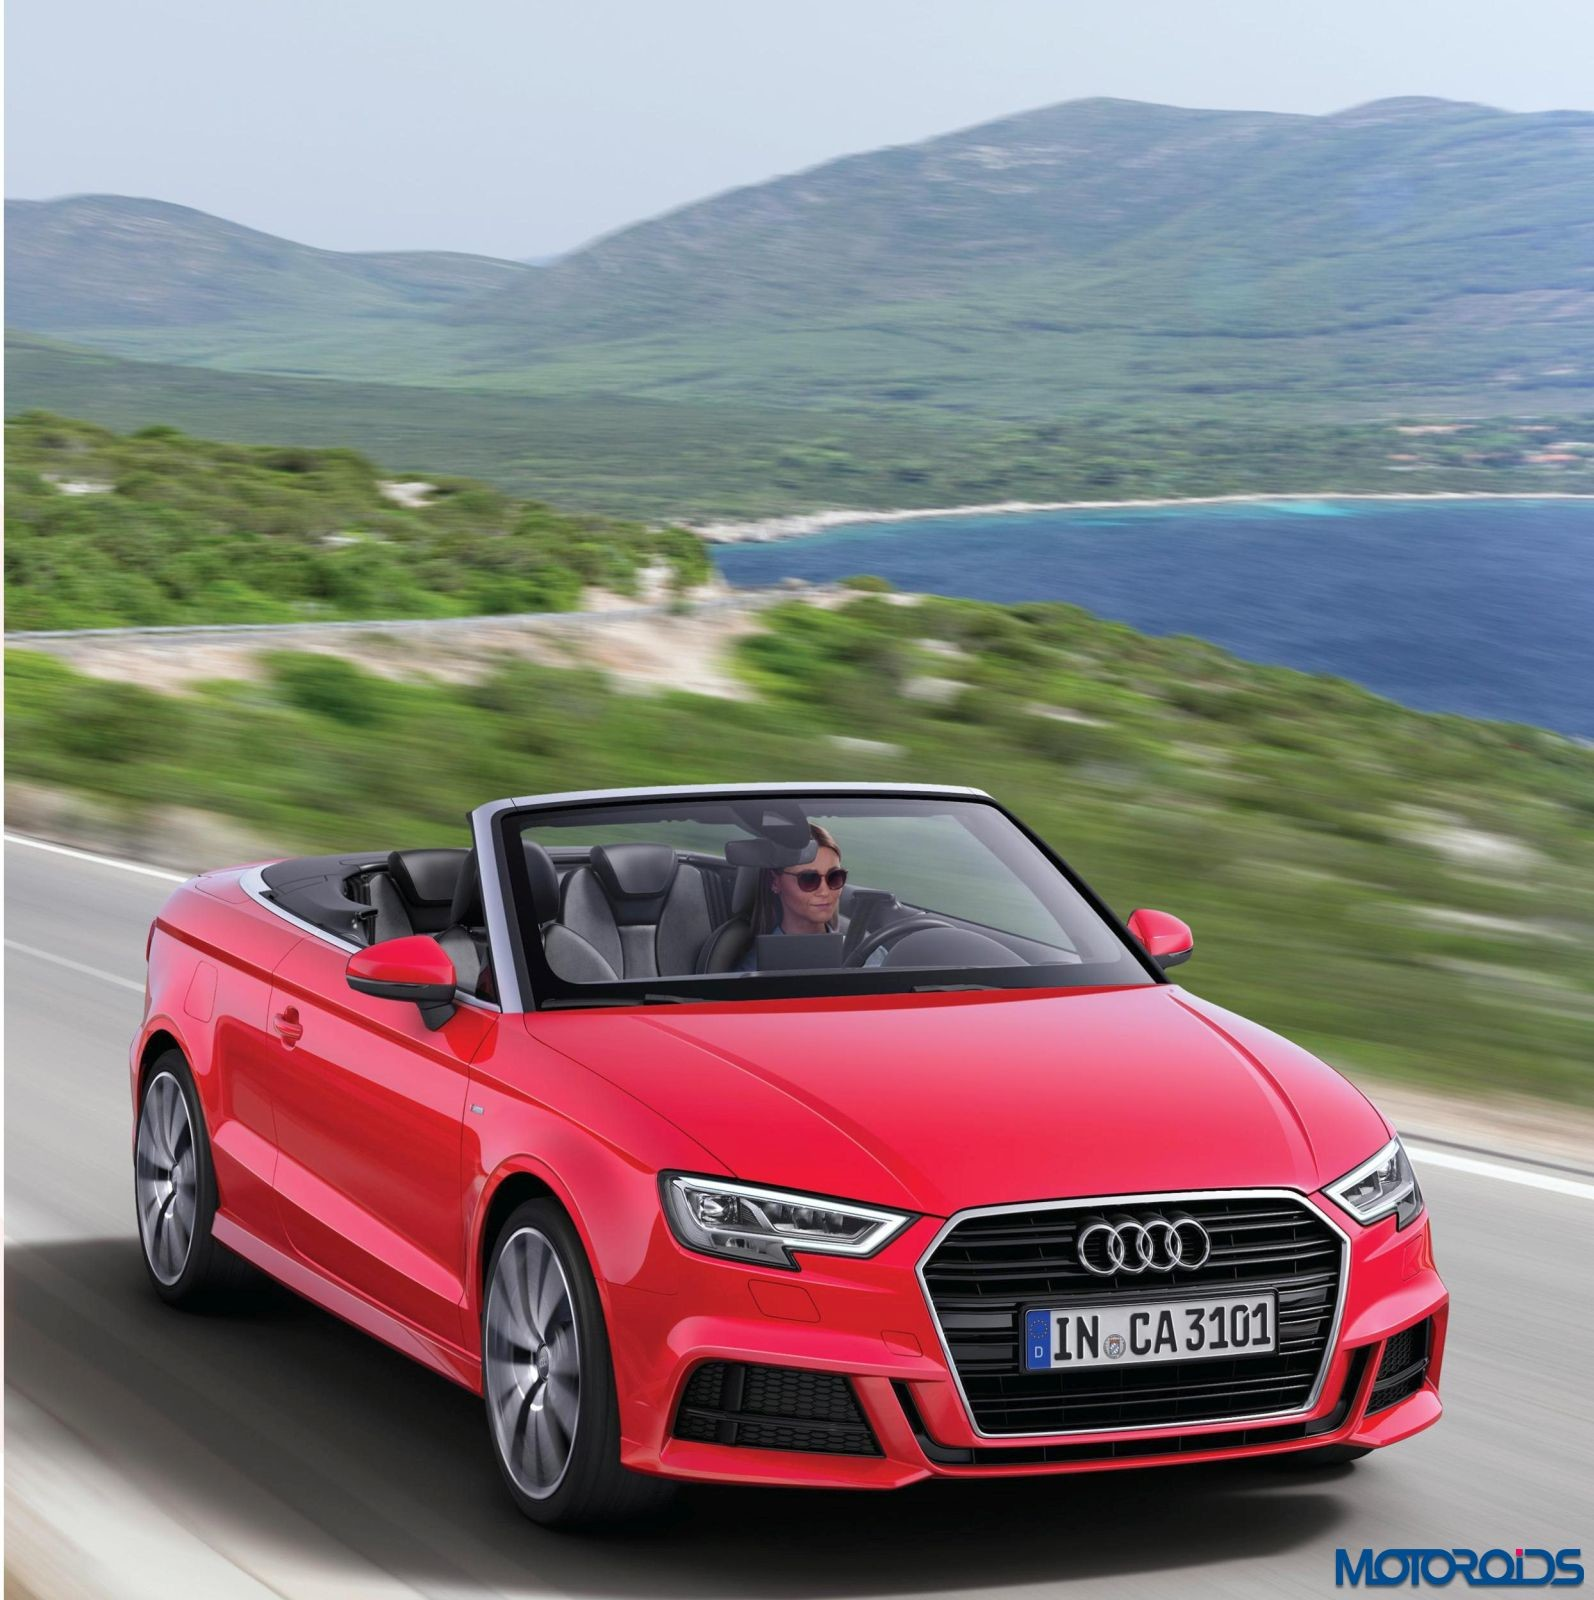 2017 audi a3 cabriolet launched in india prices start at inr lakh ex delhi motoroids. Black Bedroom Furniture Sets. Home Design Ideas